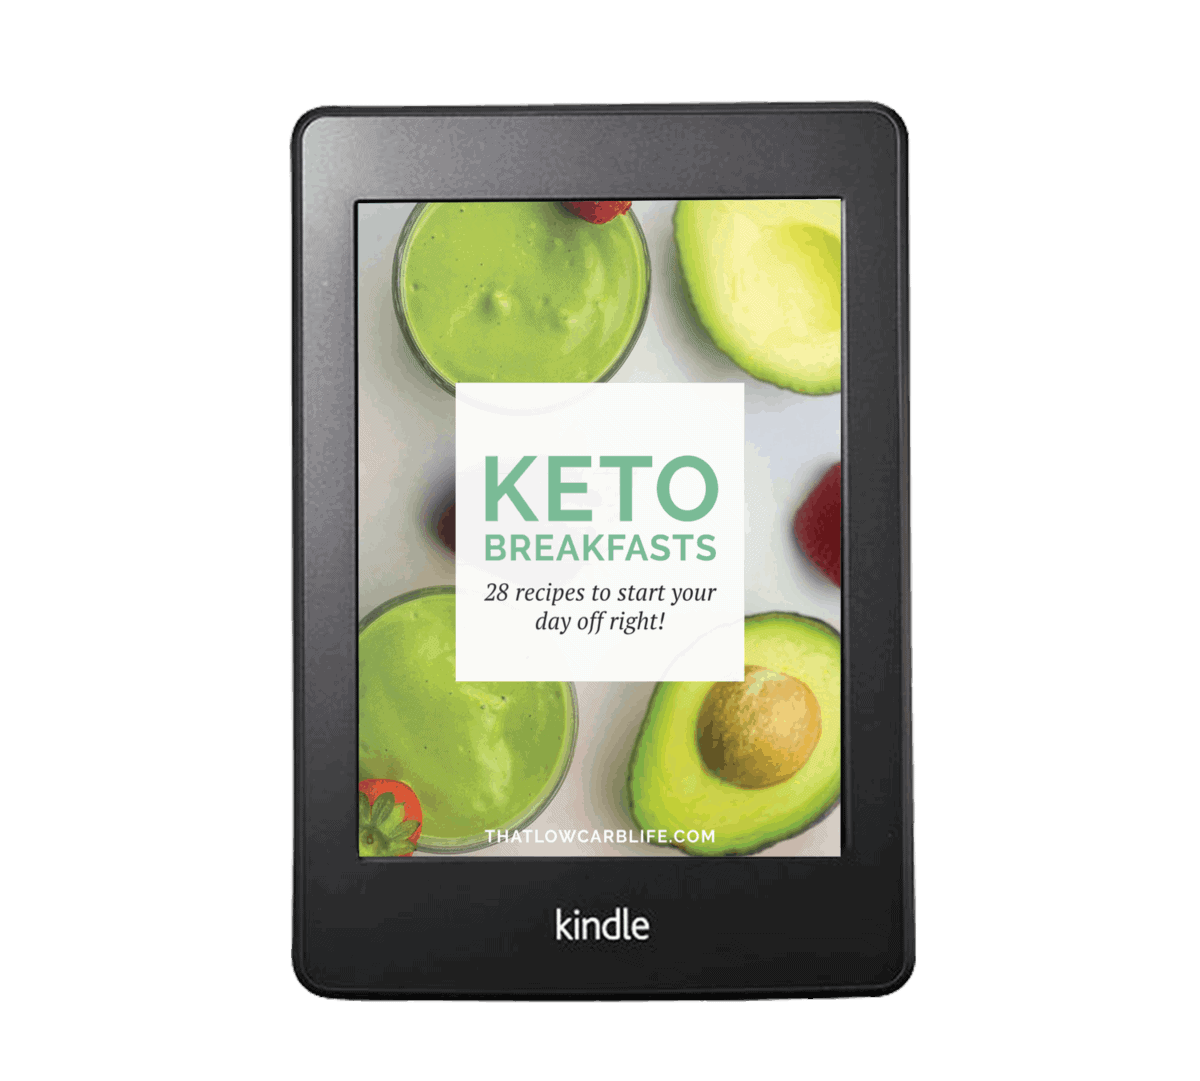 keto breakfast cookbook on a kindle